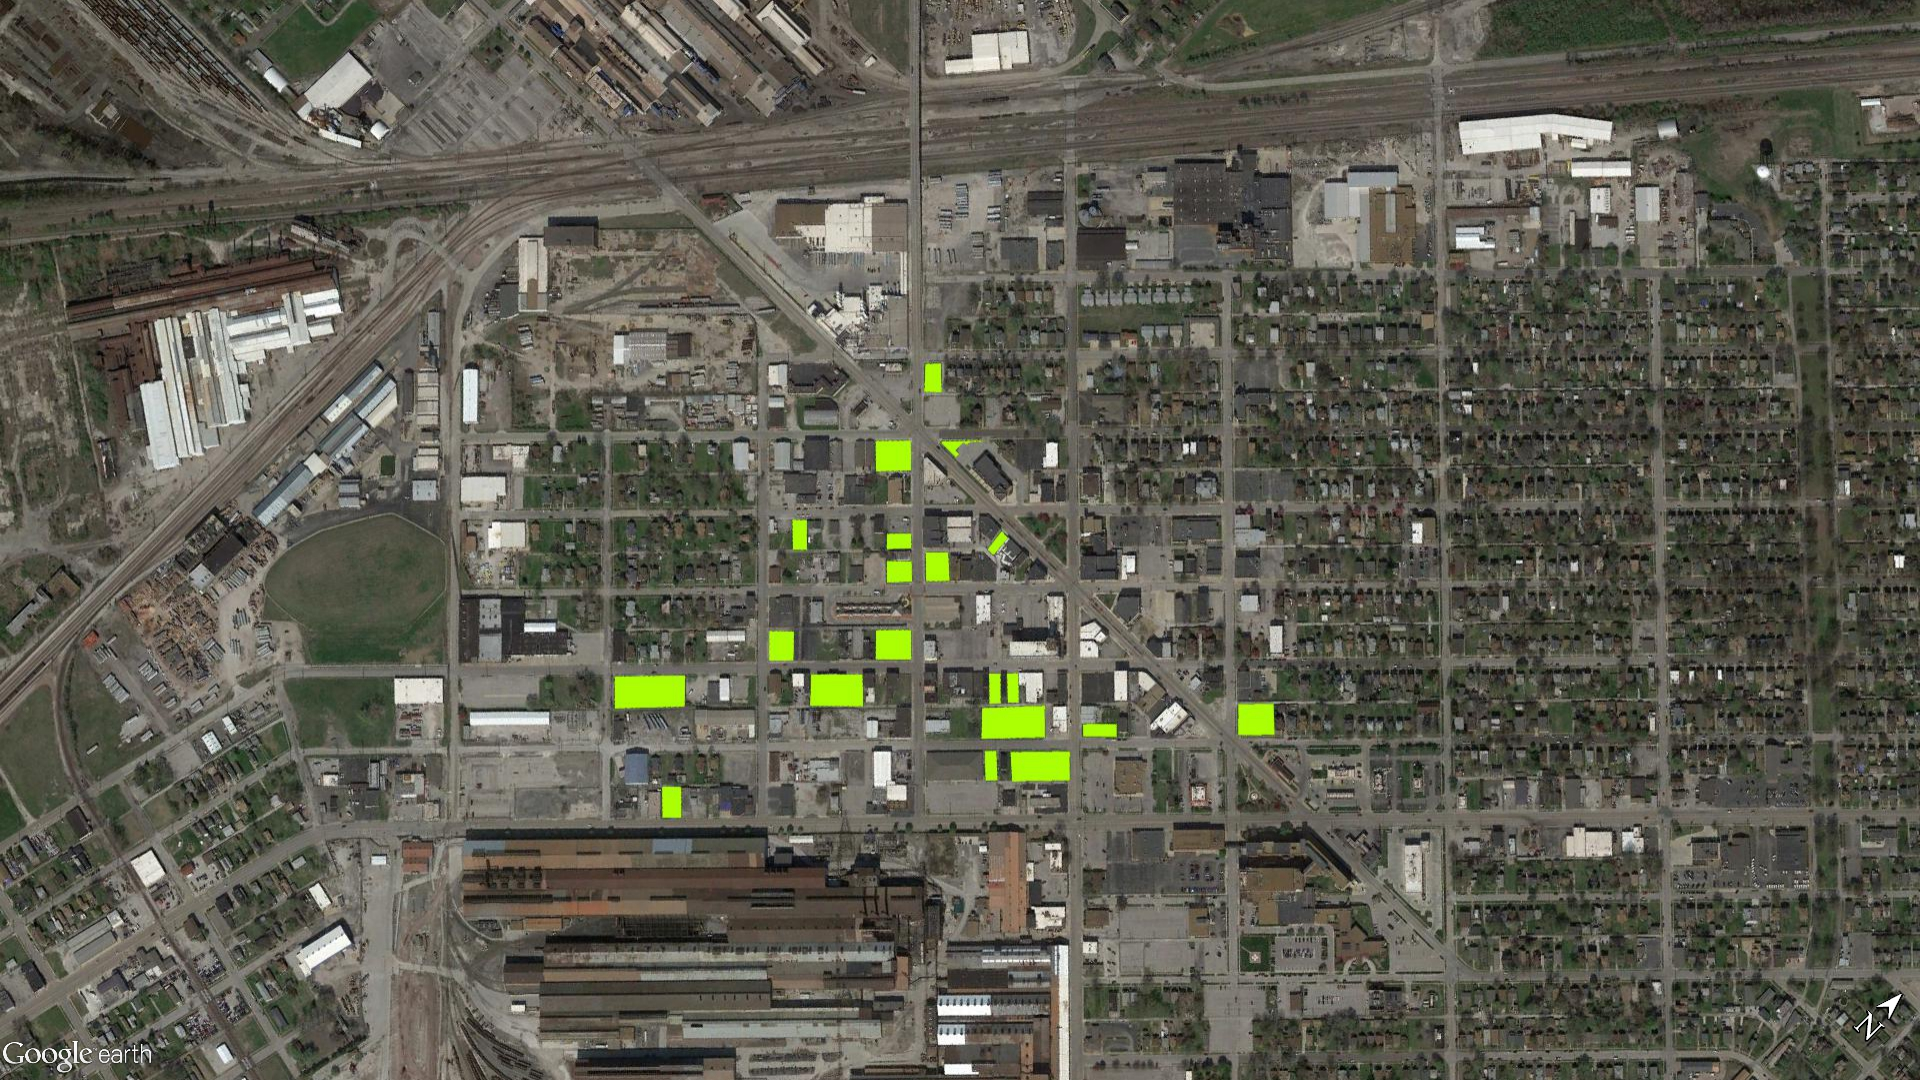 Downtown Granite City, Illinois. Green indicates a selection of empty lots.